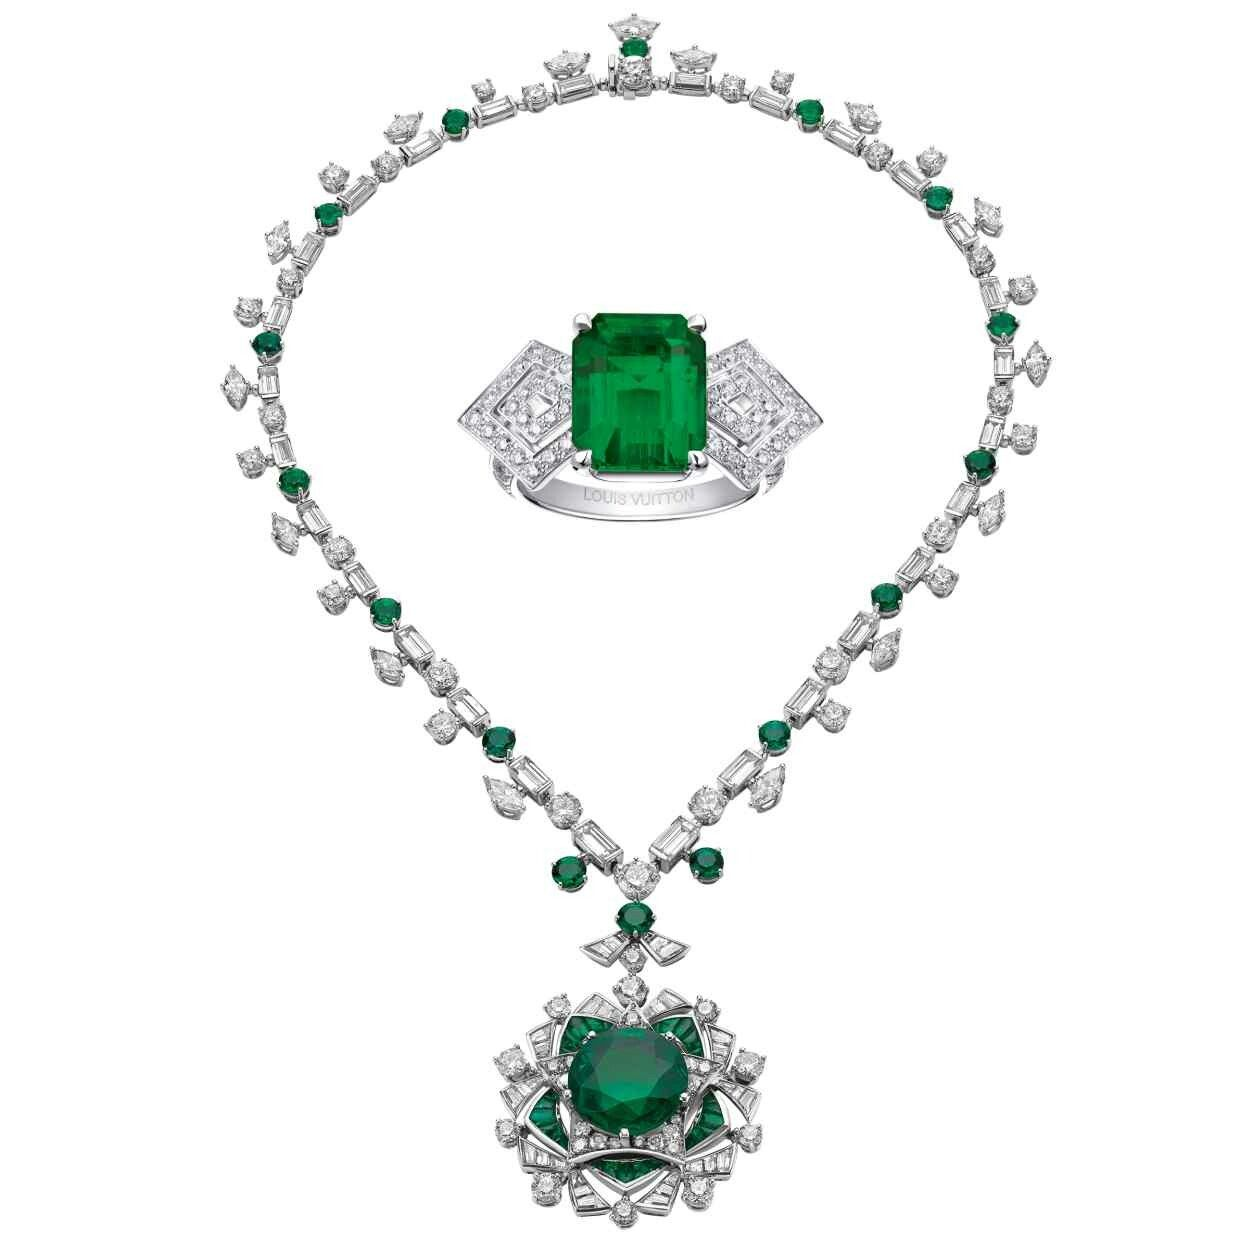 2ef7691038e Bulgari Necklace with emeralds and diamonds and a Louis Vuitton ring with  emeralds and diamonds